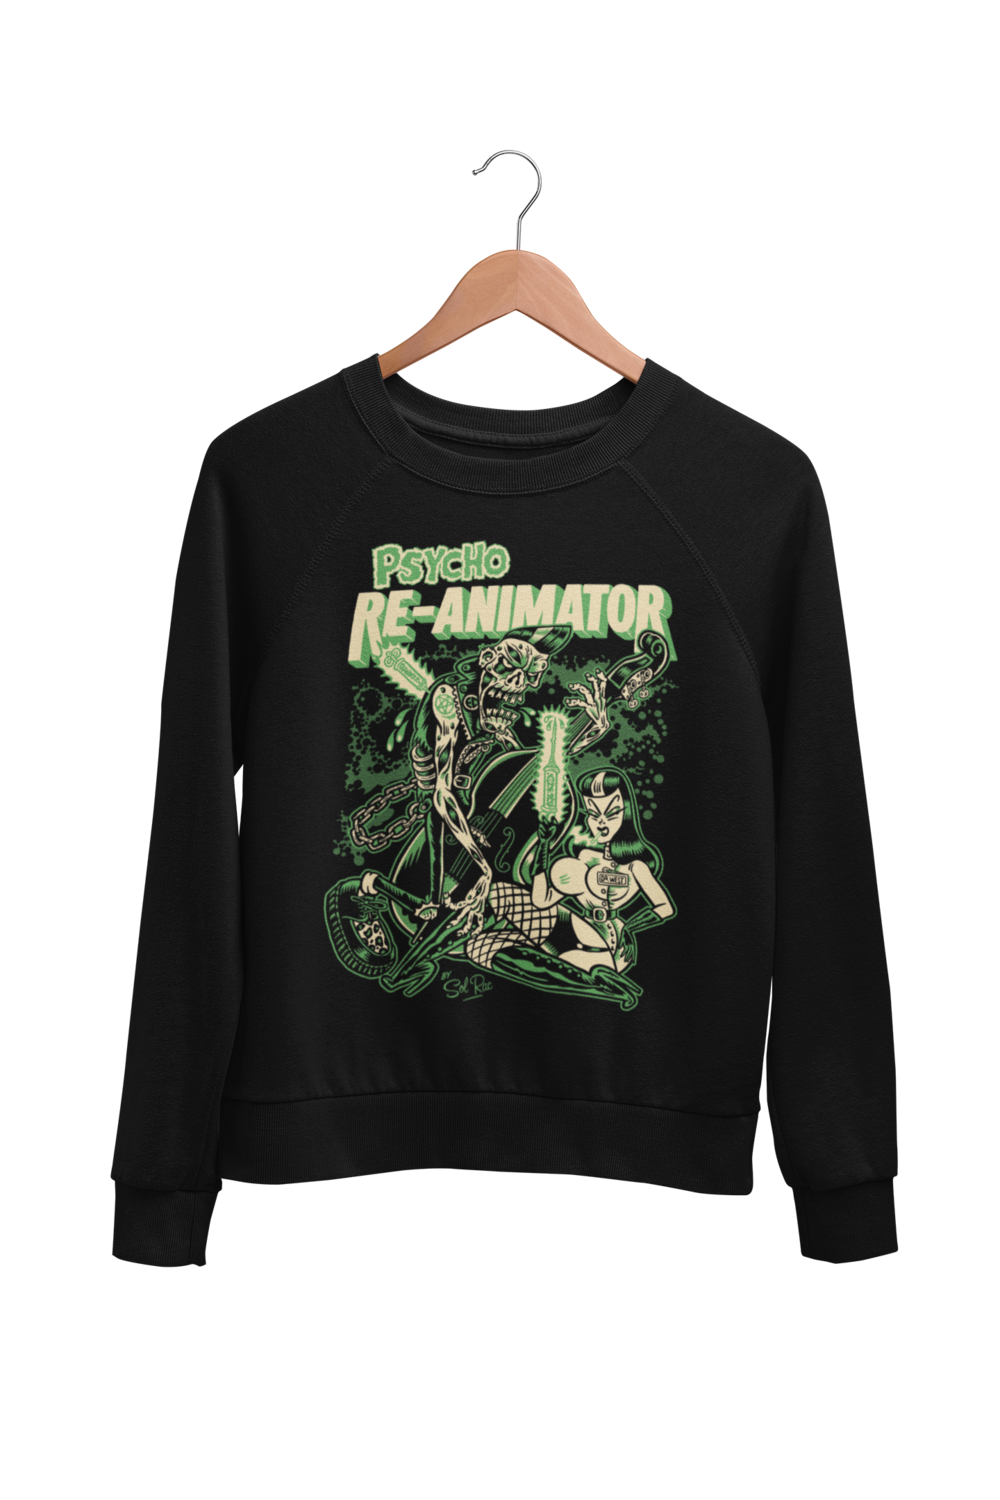 RE-ANIMATOR SWEATSHIRT UNISEX by BY SOL RAC